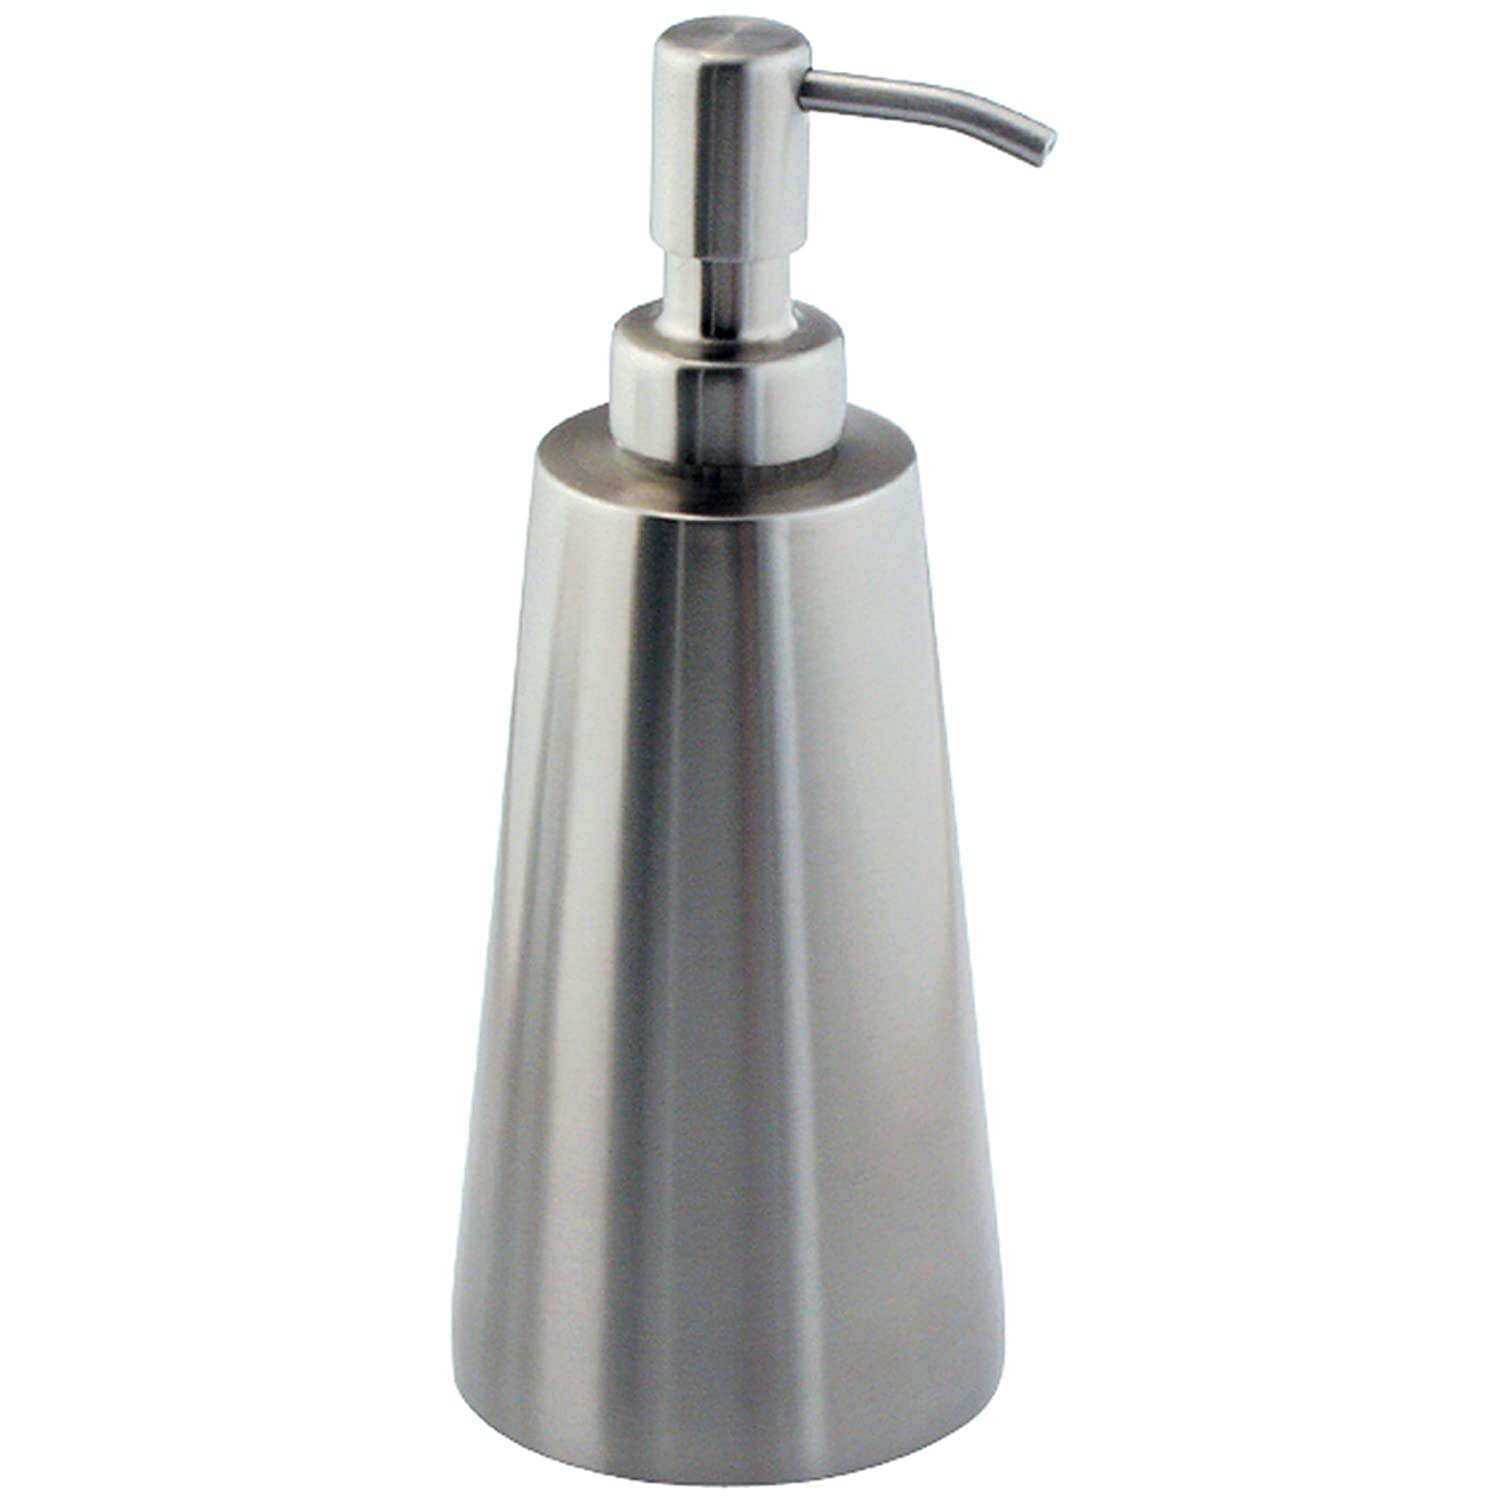 Amazoncom Interdesign Forma Koni Liquid Soap Lotion Dispenser